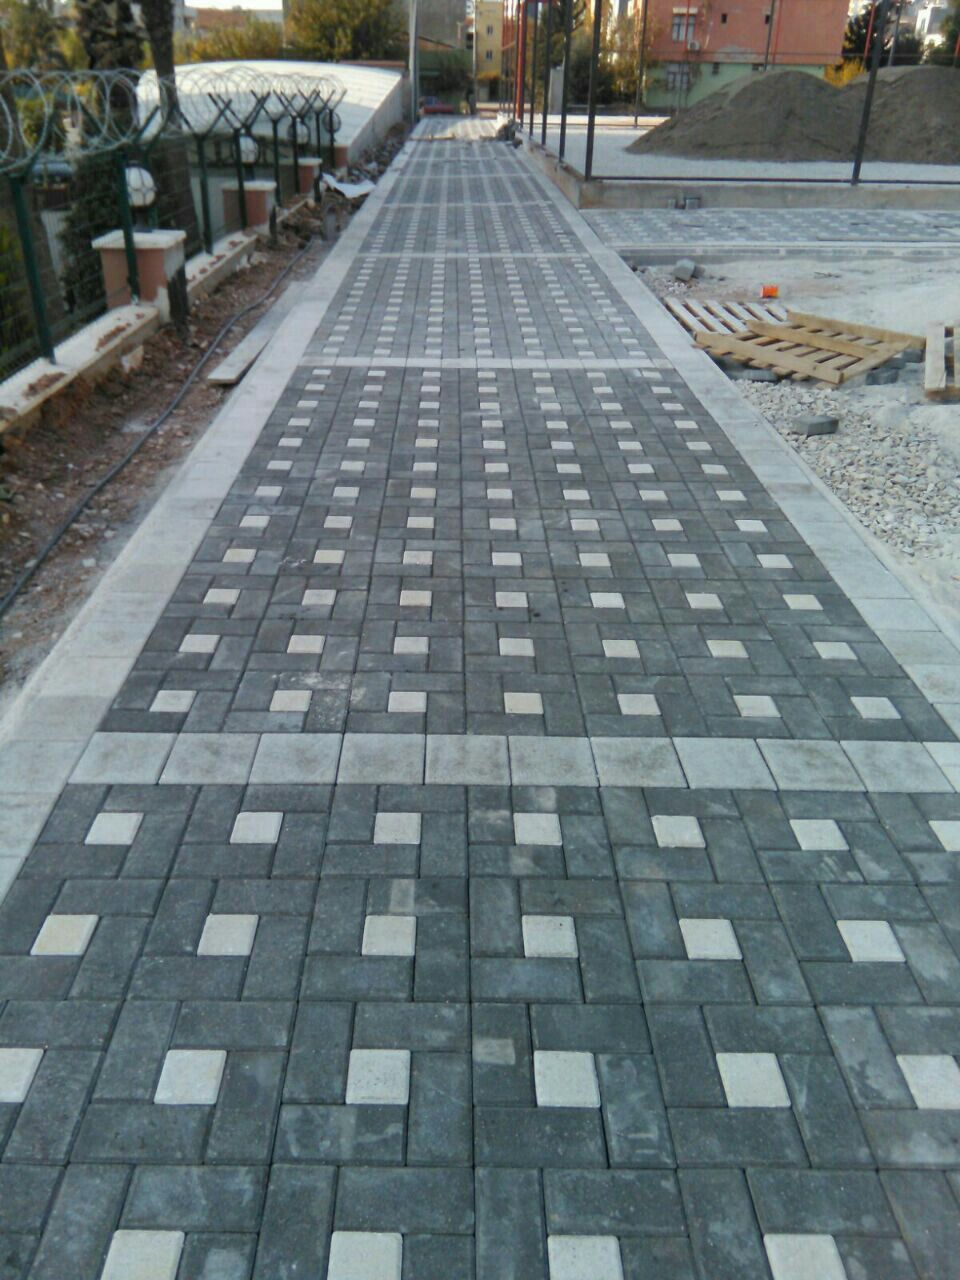 Pin By Crystal On Paving Patio Pavers Design Paving Design Patio Design